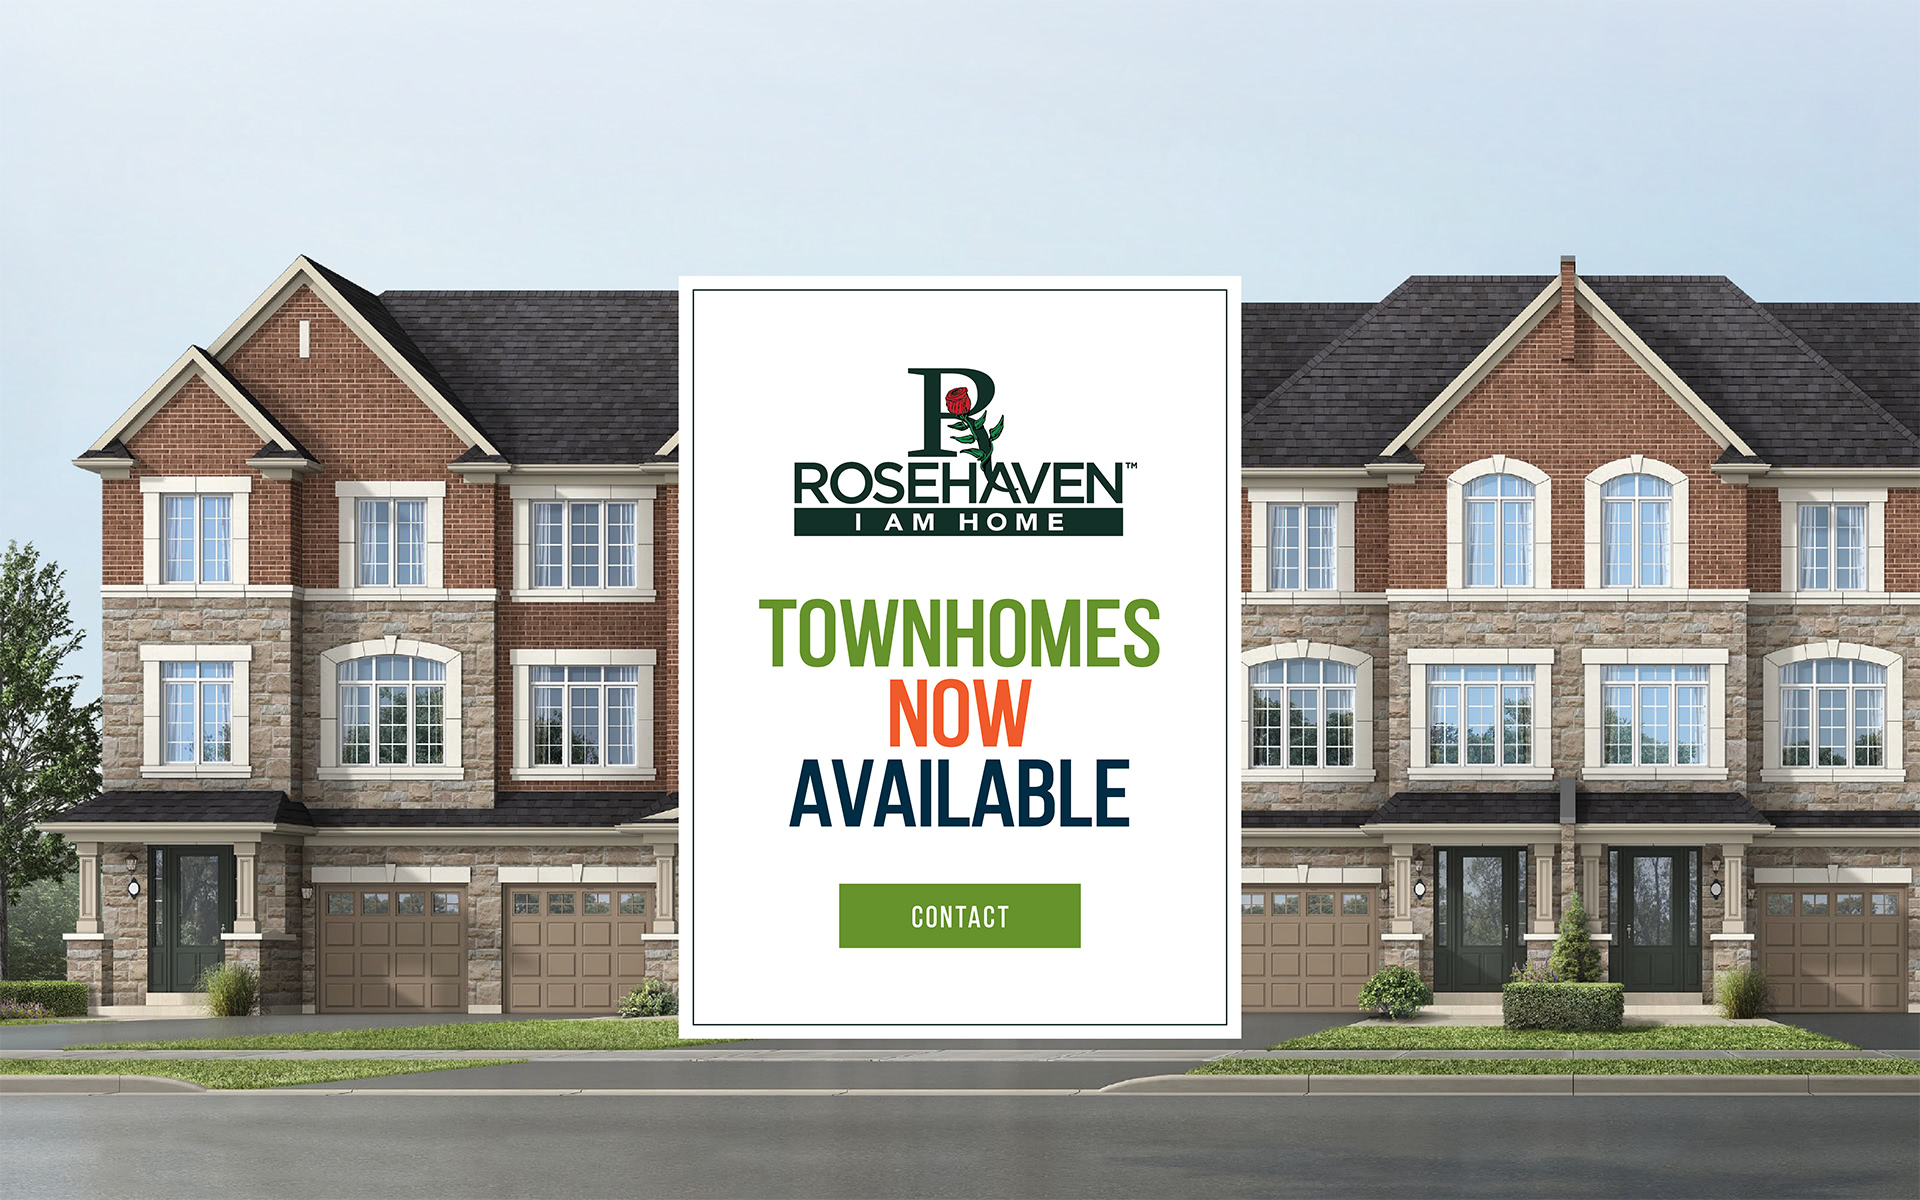 New Townhomes for Sale in Bradford